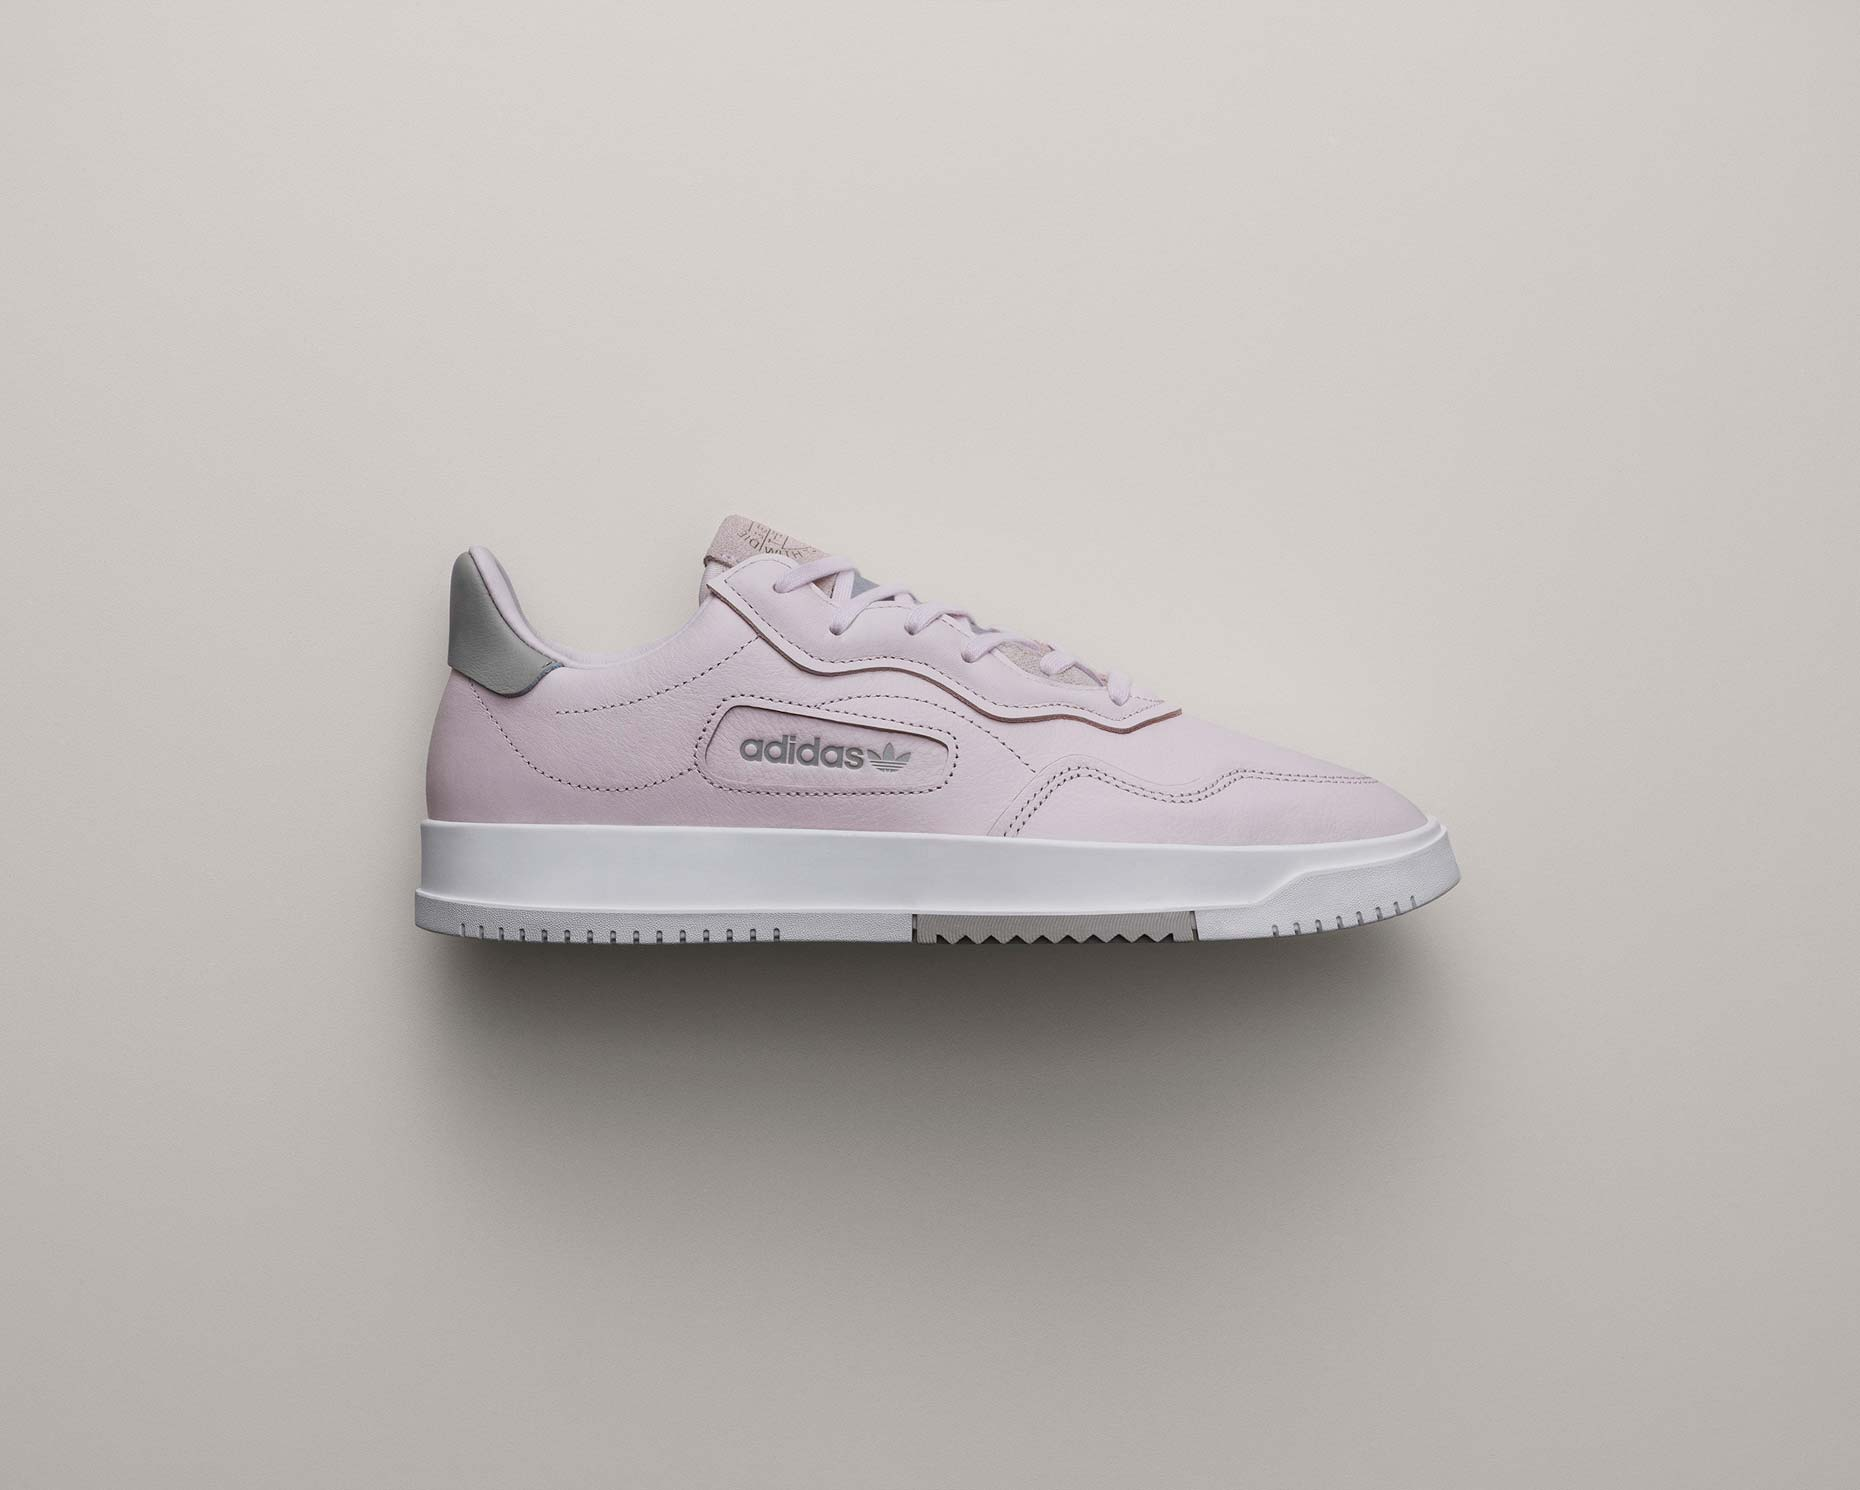 adidasOriginals_SS19_SuperCourt_SCPremiere_BD7598_01_Angle_COMP_b